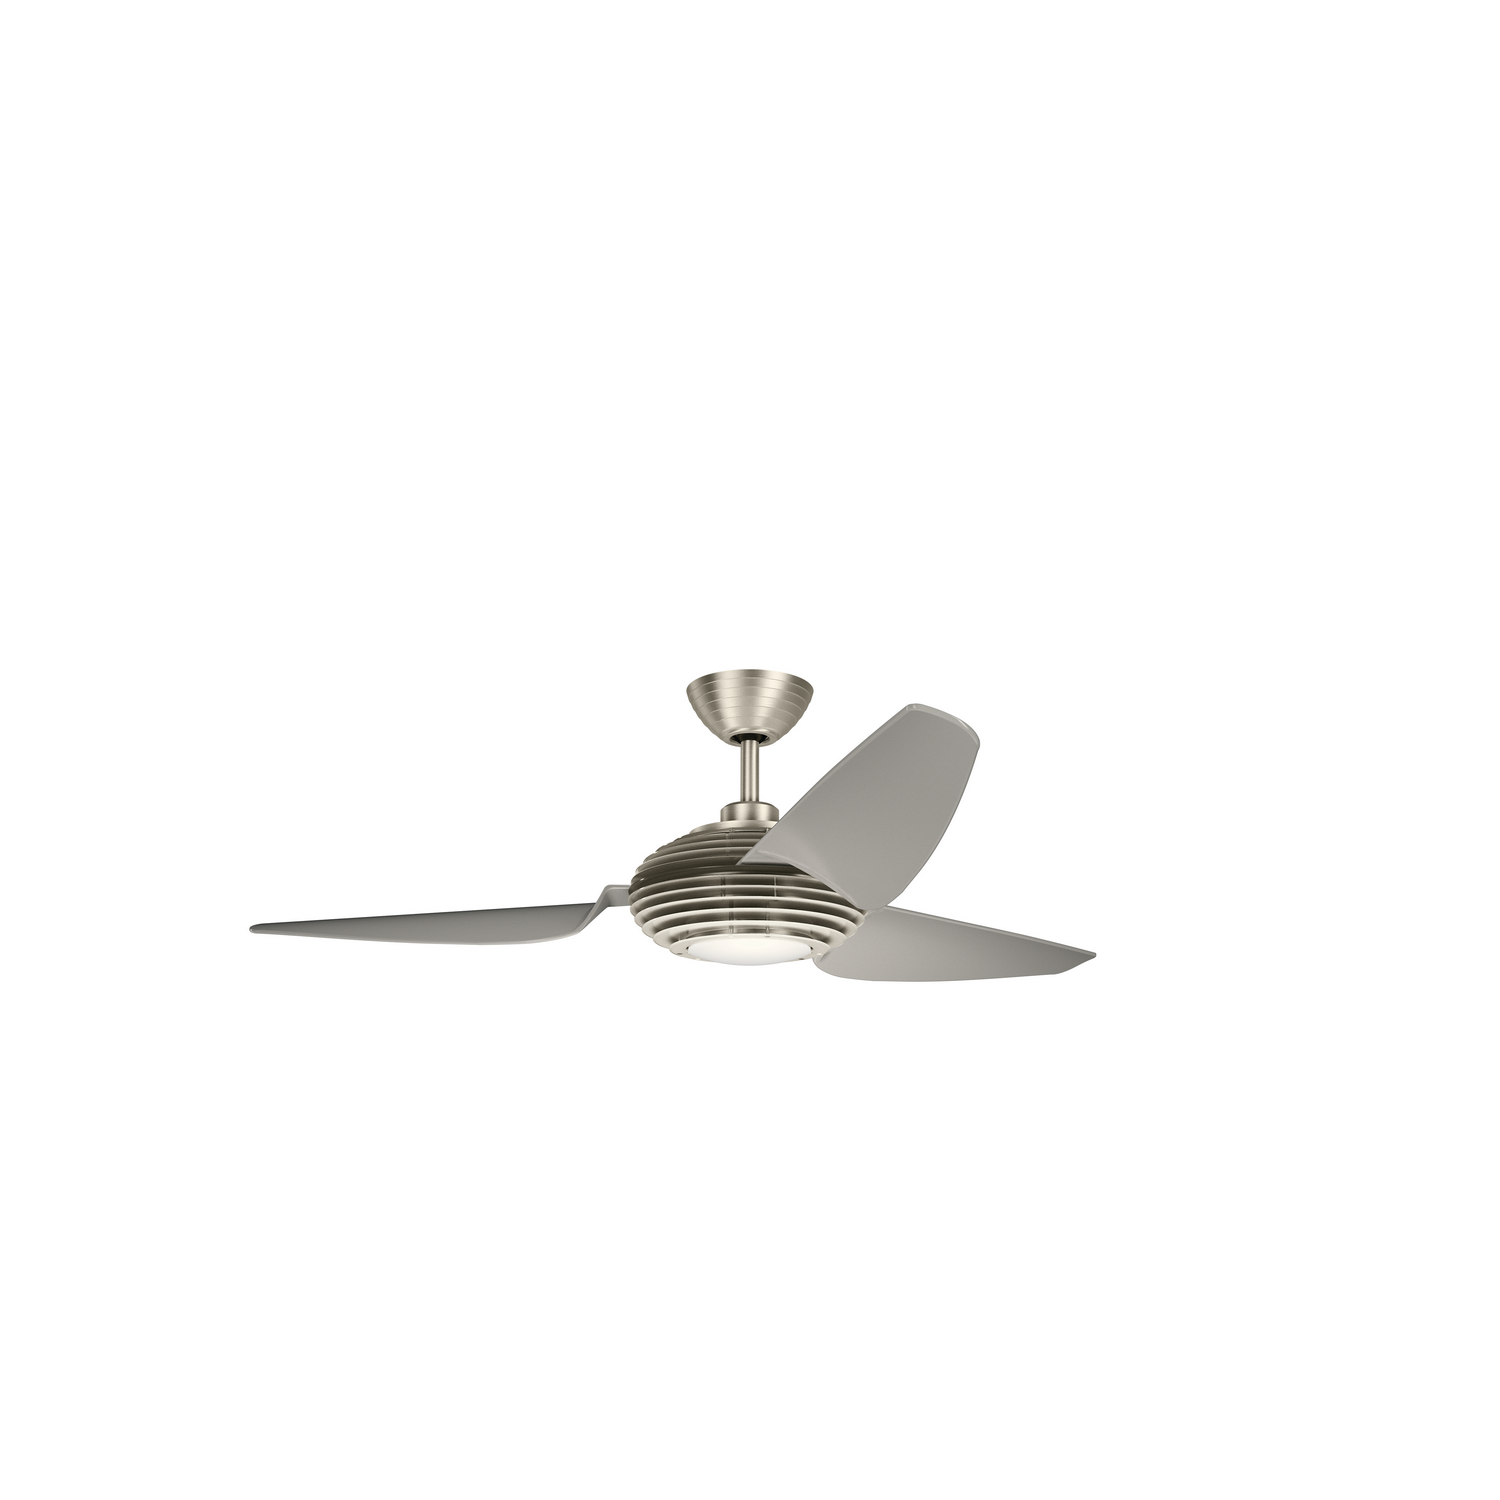 60 inchCeiling Fan from the Voya collection by Kichler 300706BSS